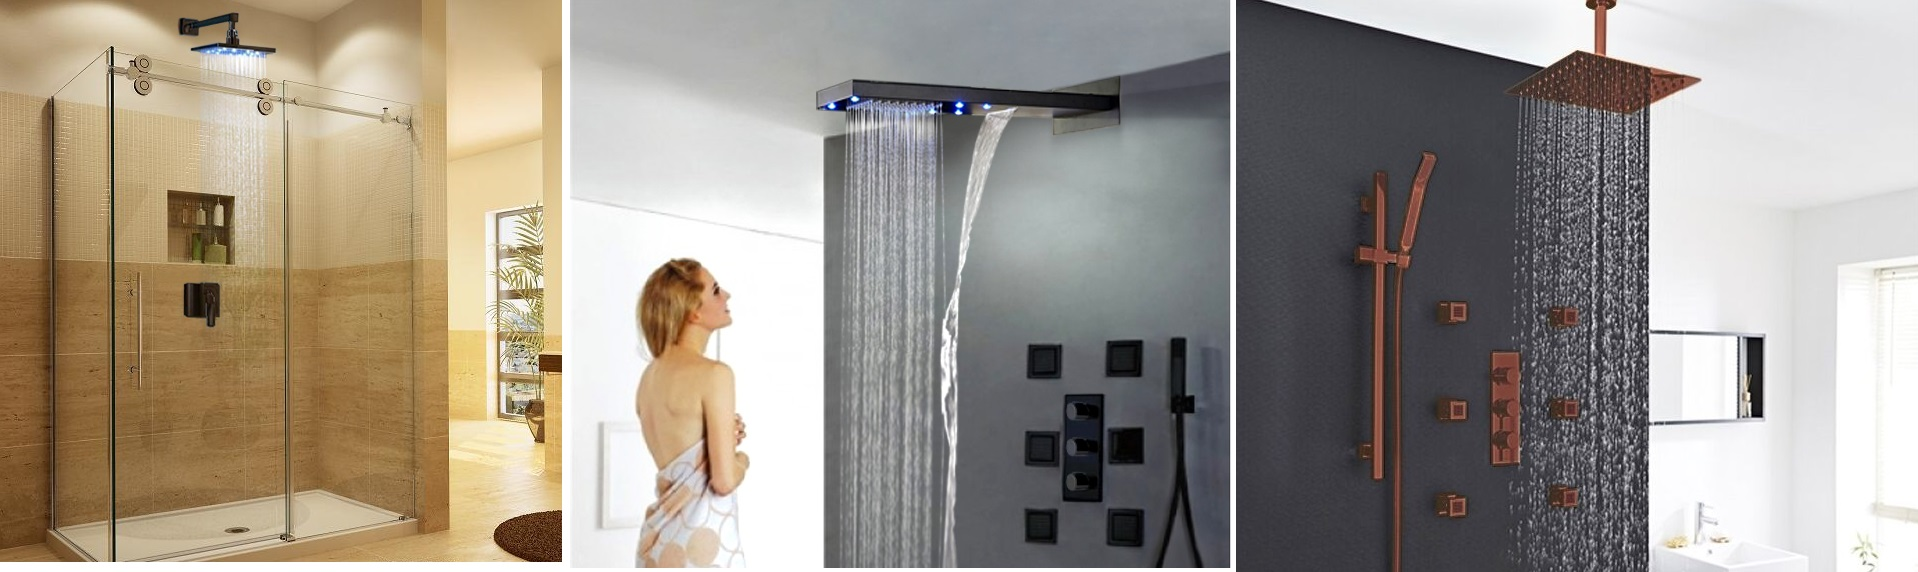 Oil Rubbed Bronze Led Rain Shower Heads